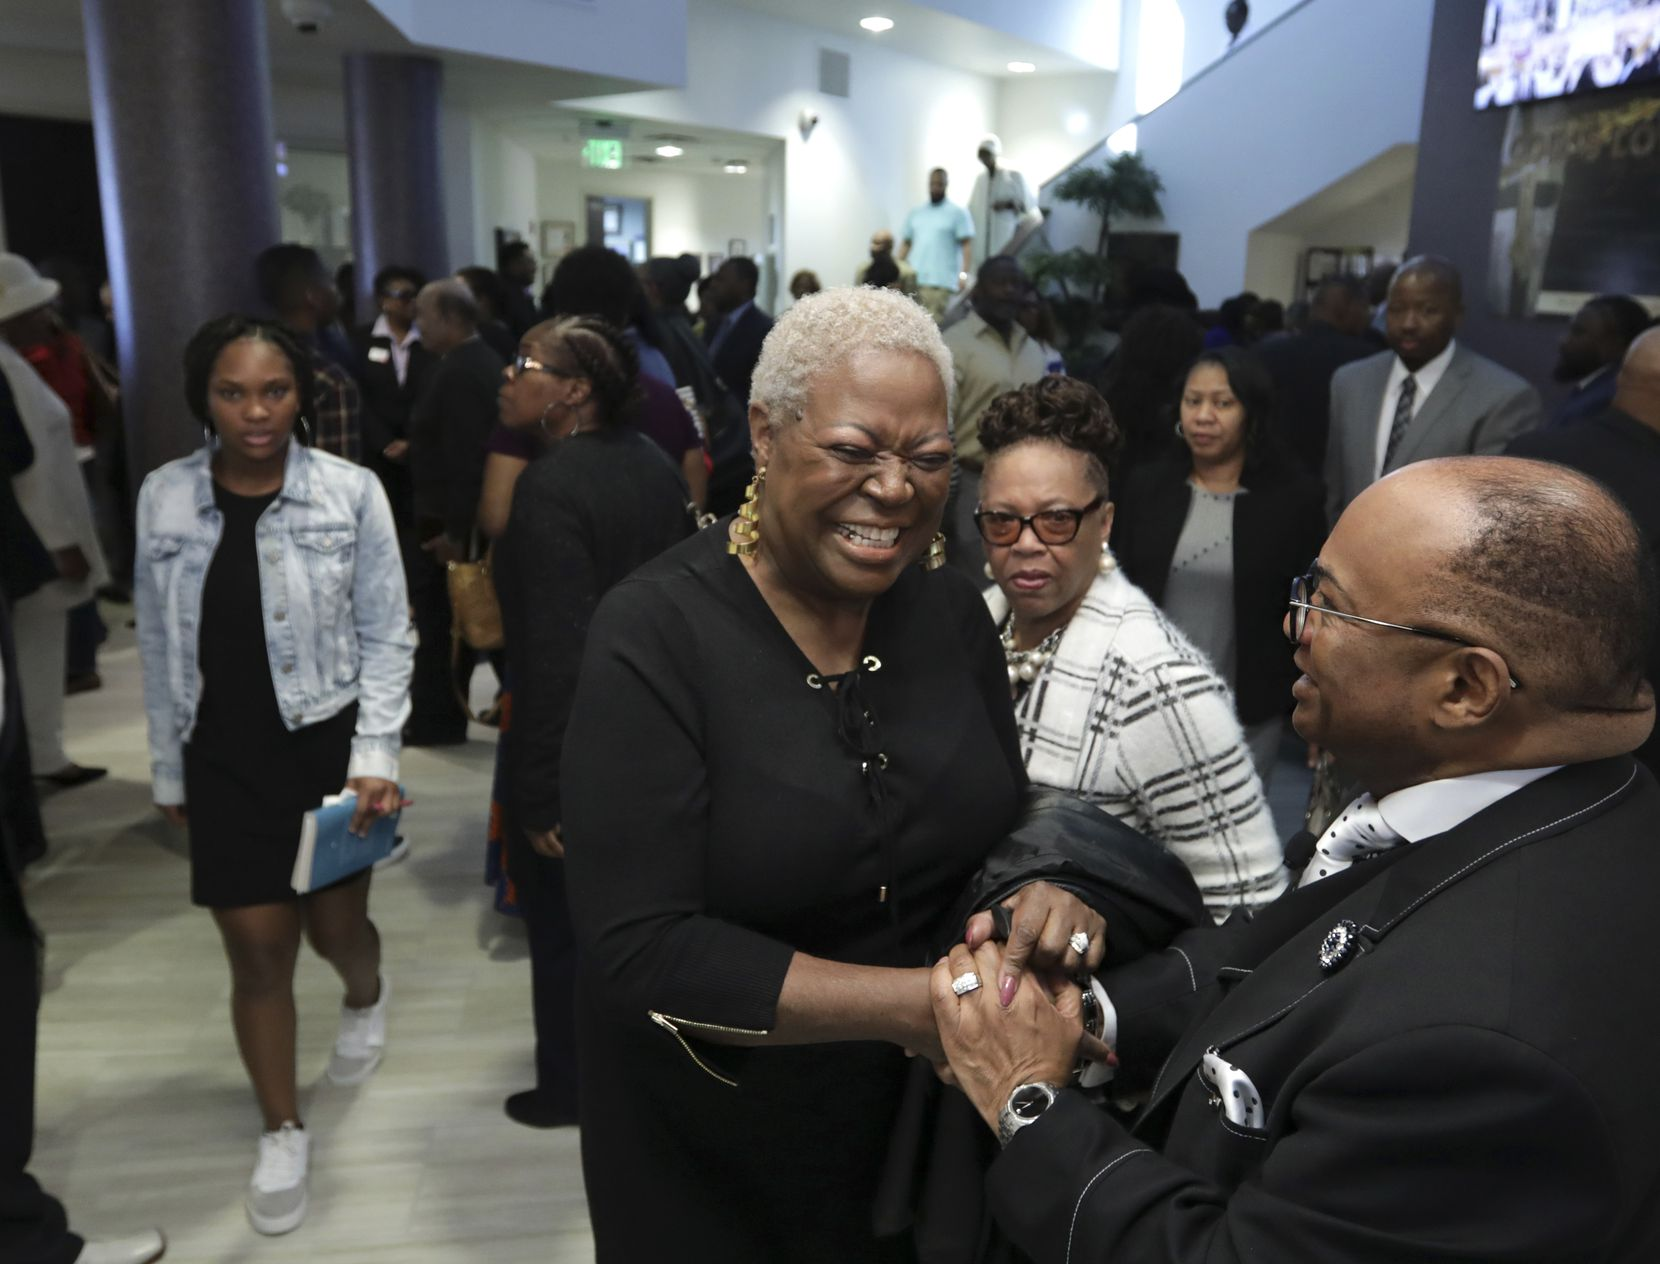 Pastor Isiah Joshua Jr. (right) meets with members of the congregation at Shiloh Missionary Baptist Church in Plano on Feb. 2, 2020.